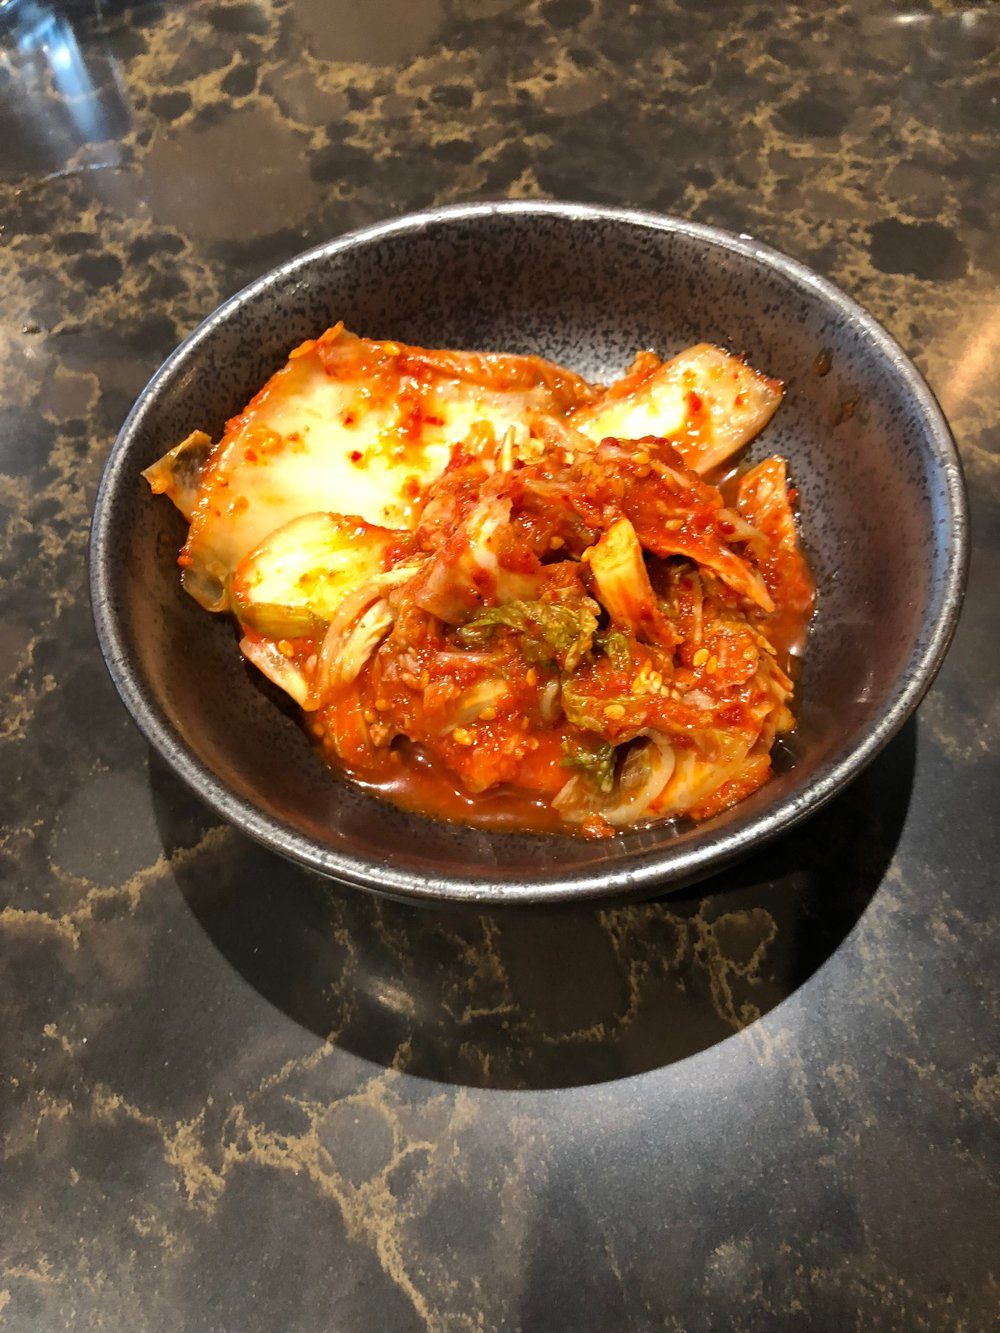 Fermentation turns cabbage into kimchi. Mmm